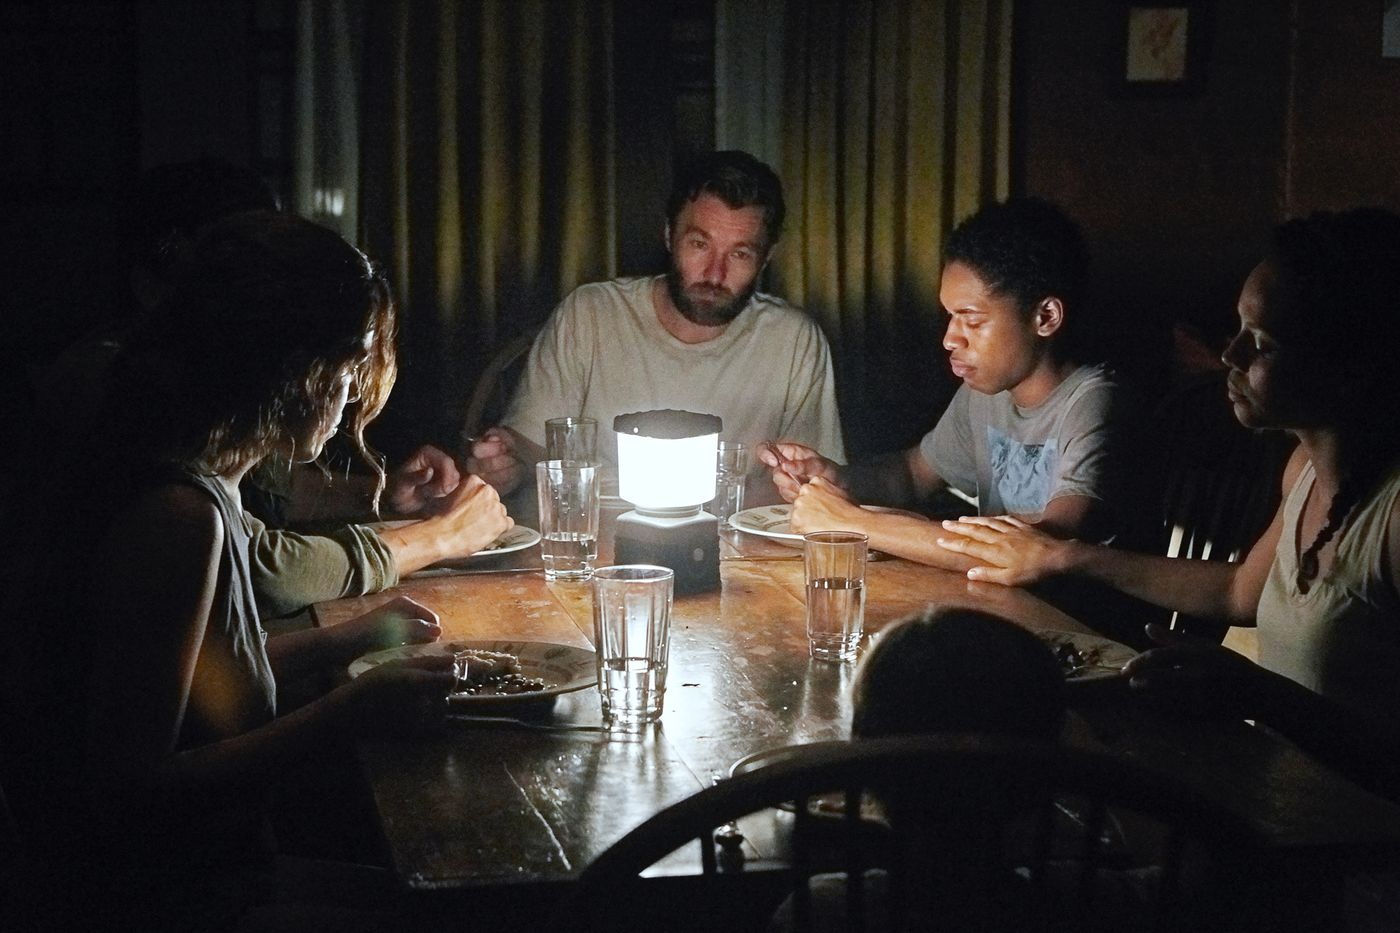 It Comes At Night review: a moody horror film where humanity is the monster  - The Verge